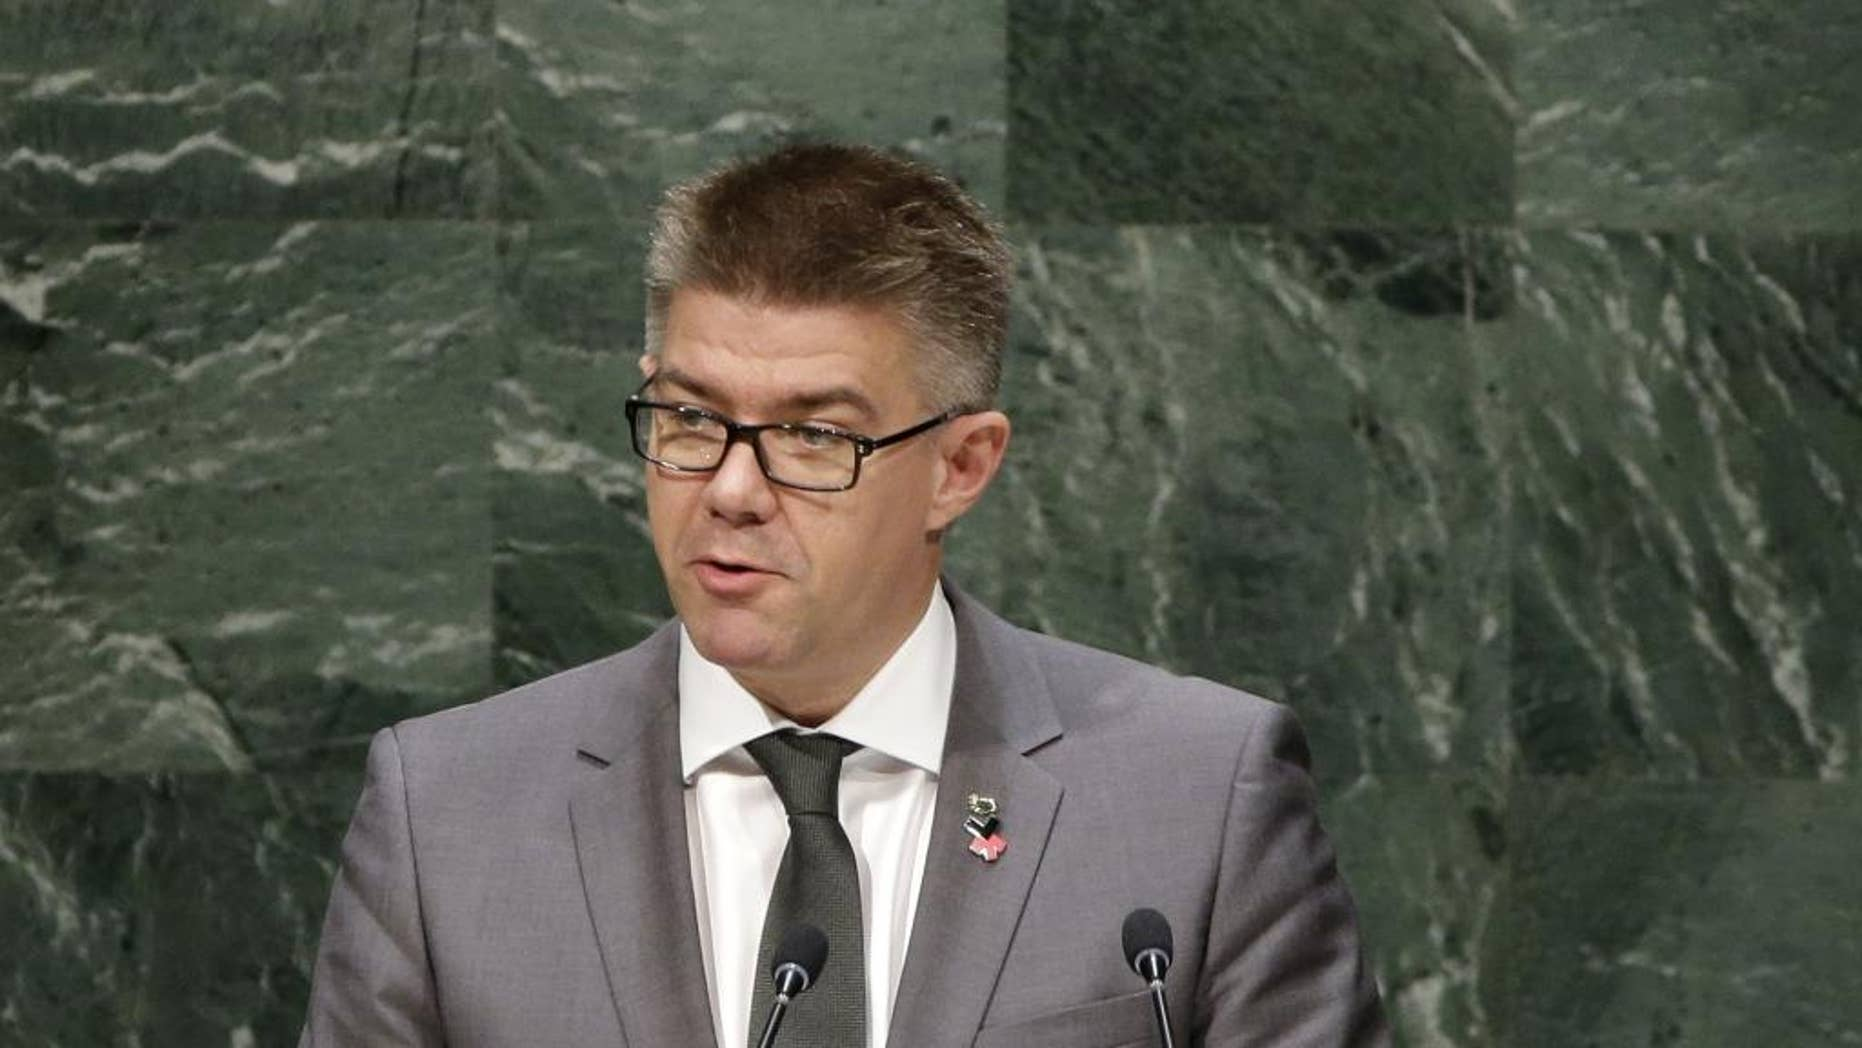 Gunnar Bragi Sveinsson, Minister for Foreign Affairs of Iceland, speaks during the 69th session of the United Nations General Assembly at U.N. headquarters, Monday, Sept. 29, 2014. (AP Photo/Seth Wenig)